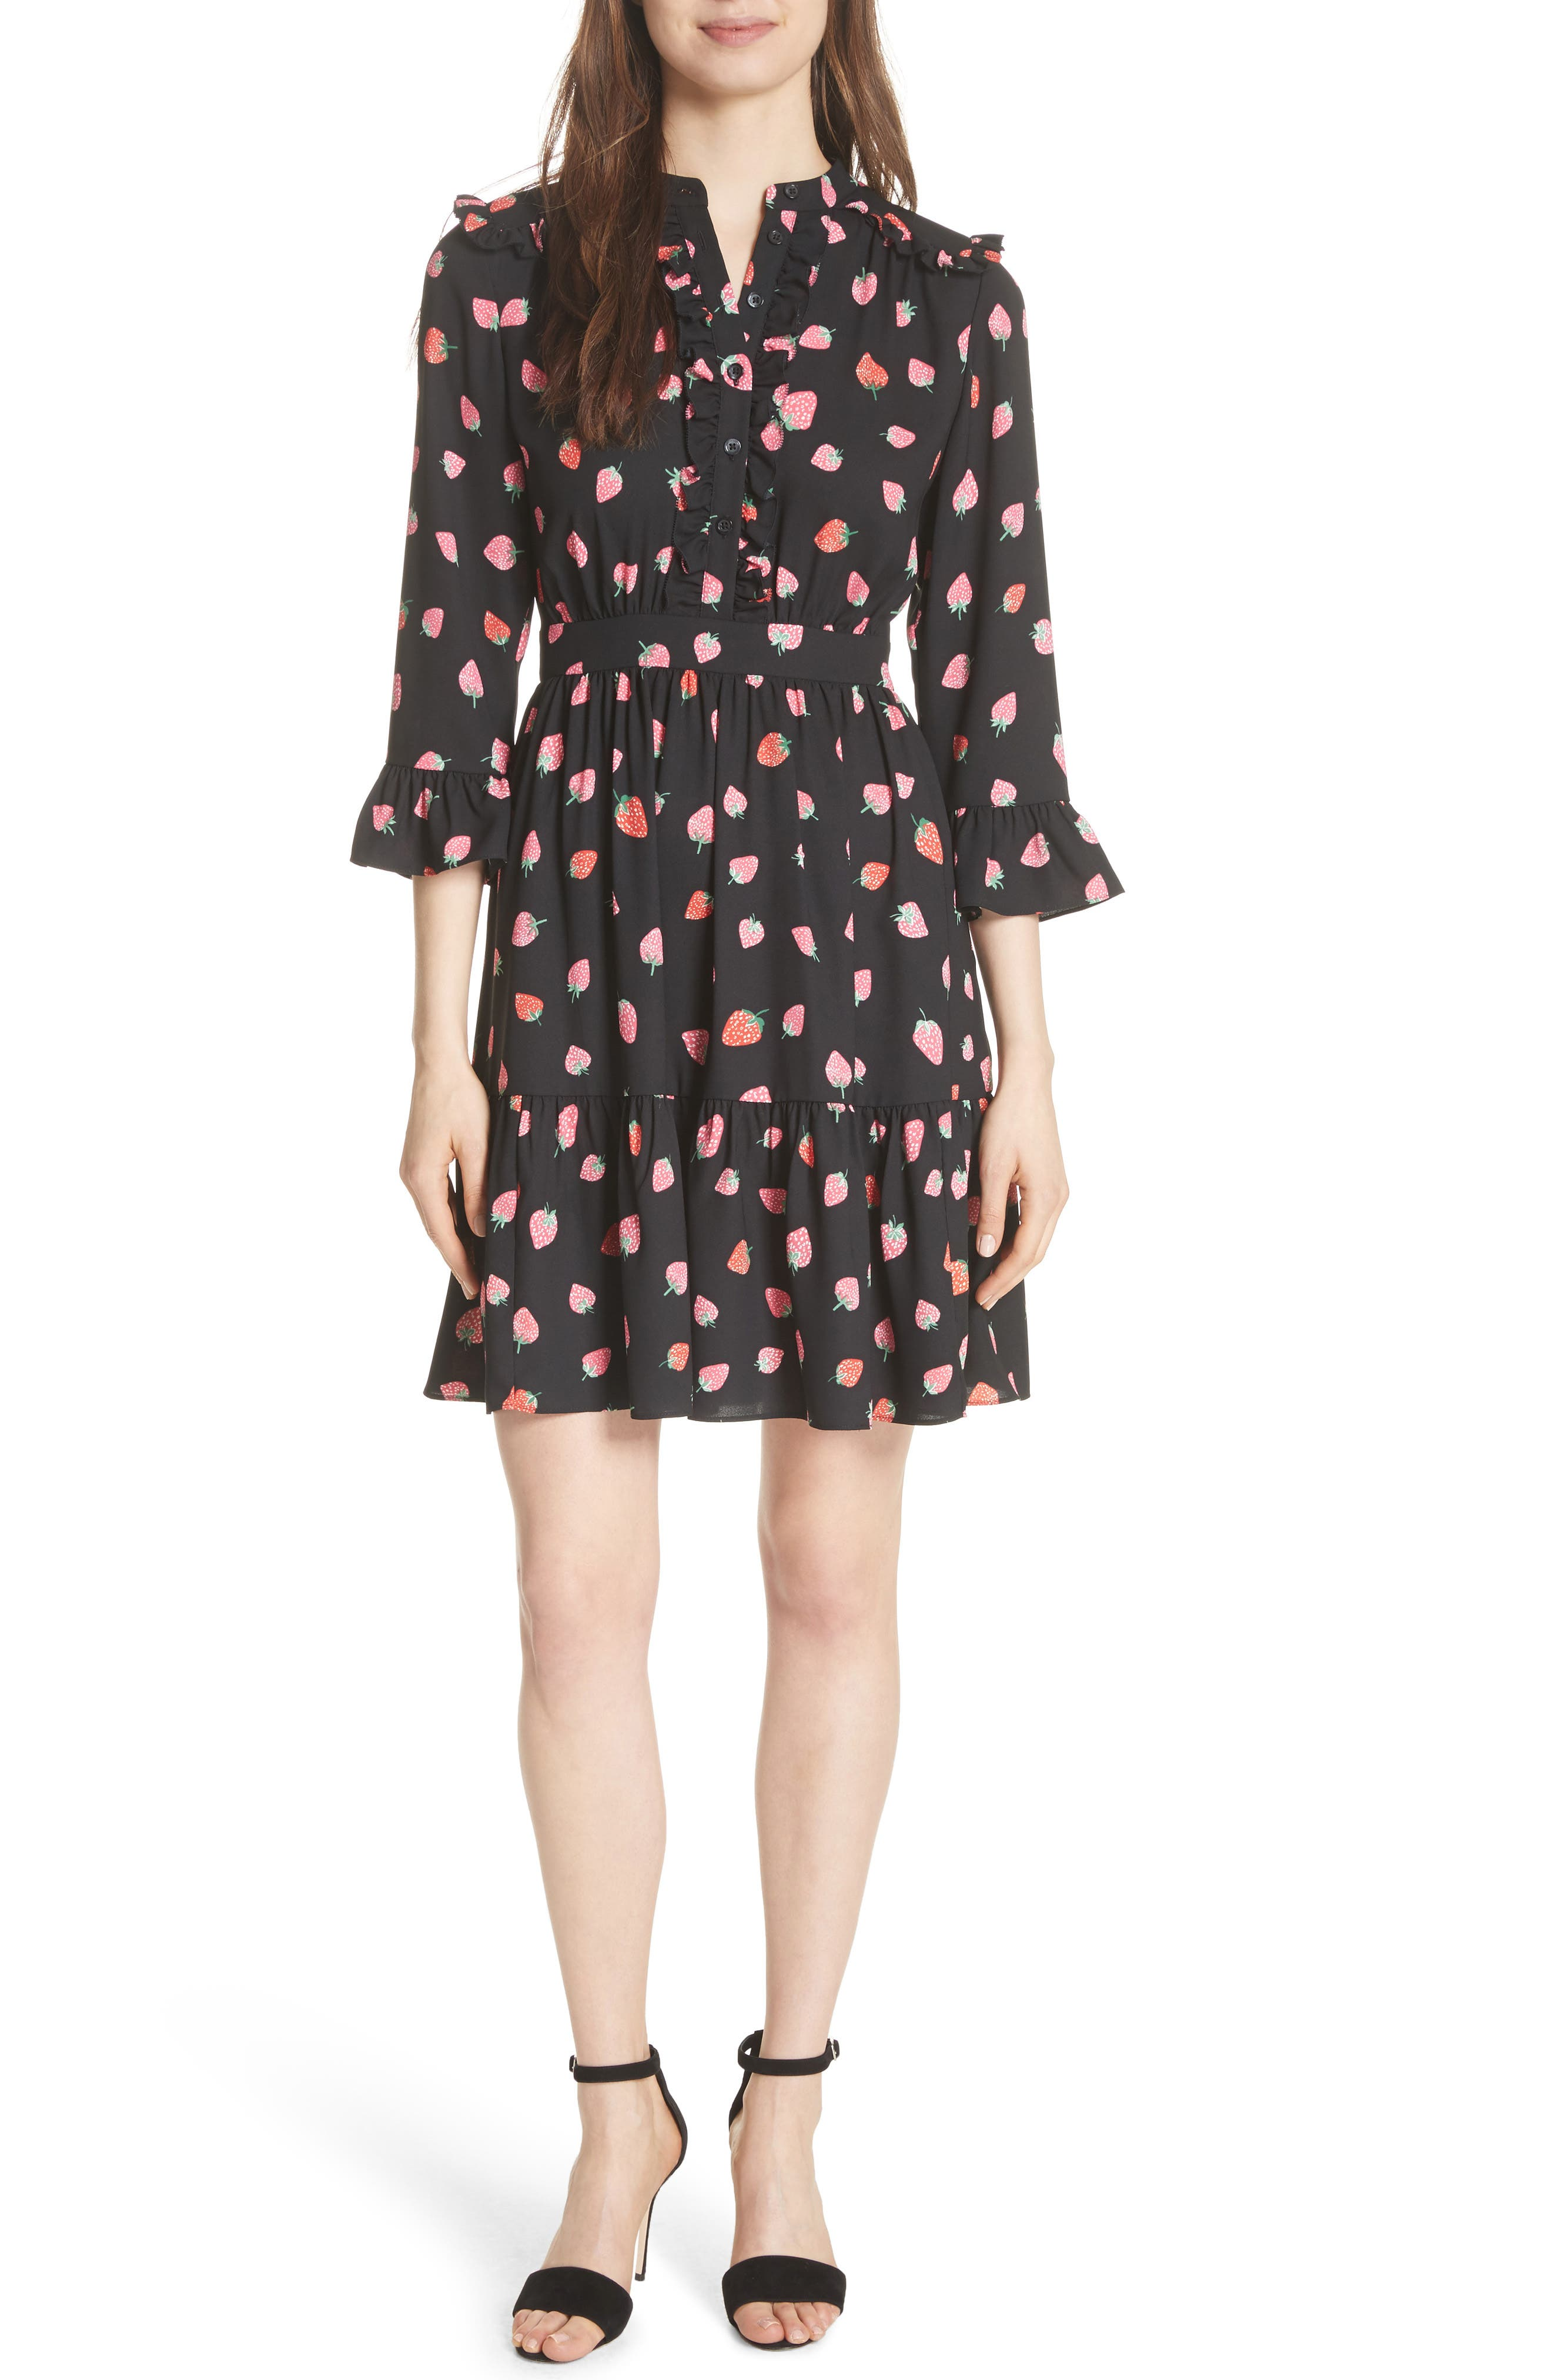 tossed berry shirtdress,                             Main thumbnail 1, color,                             001